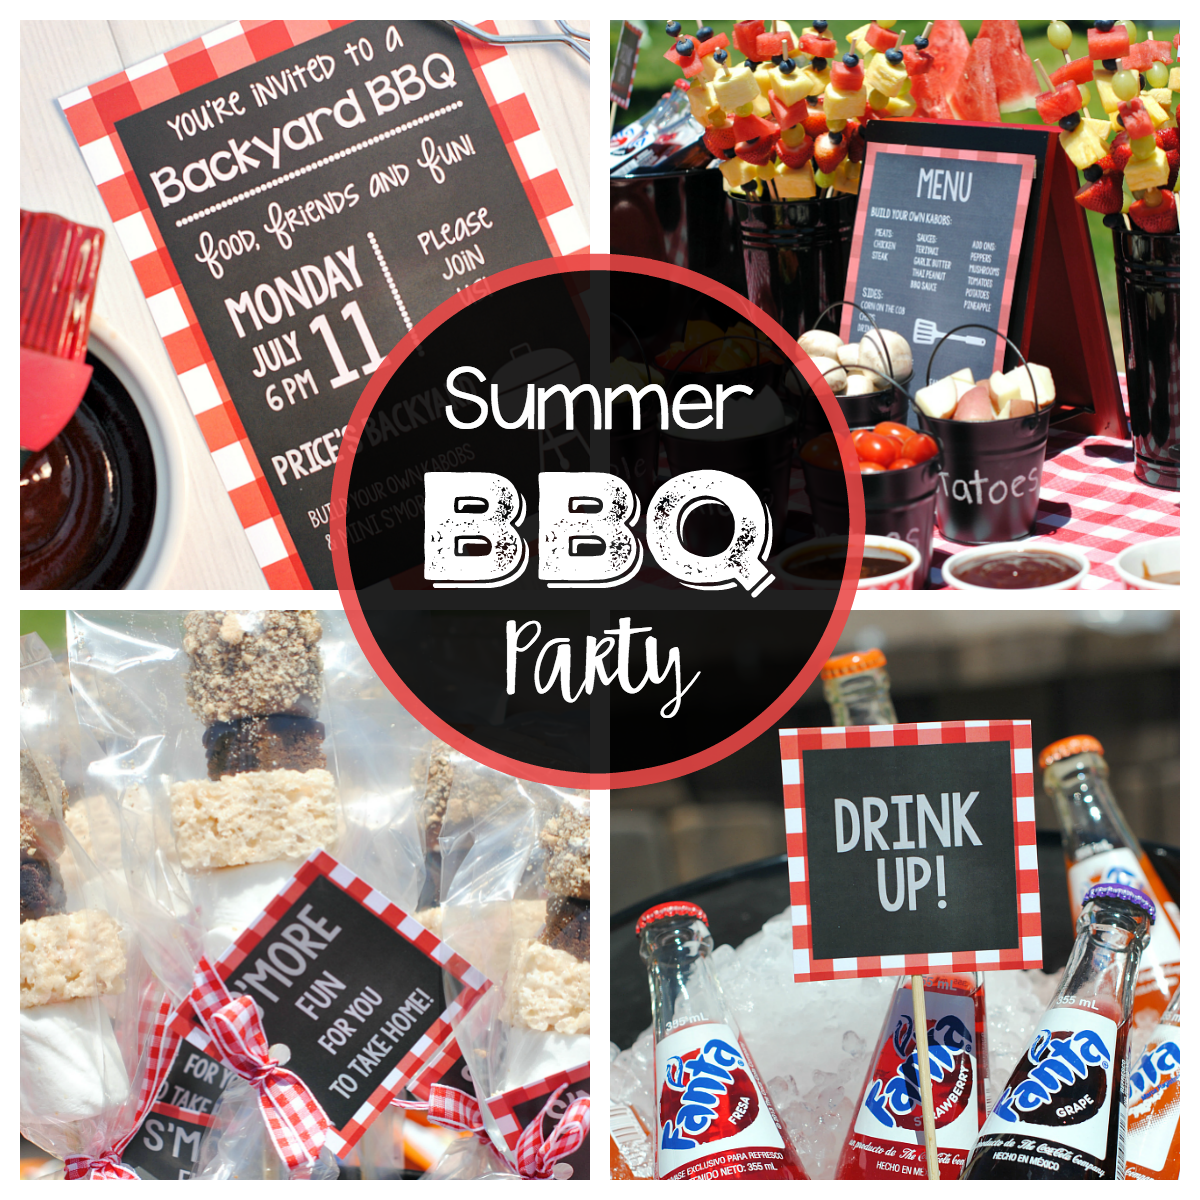 Outdoor BBQ Ideas